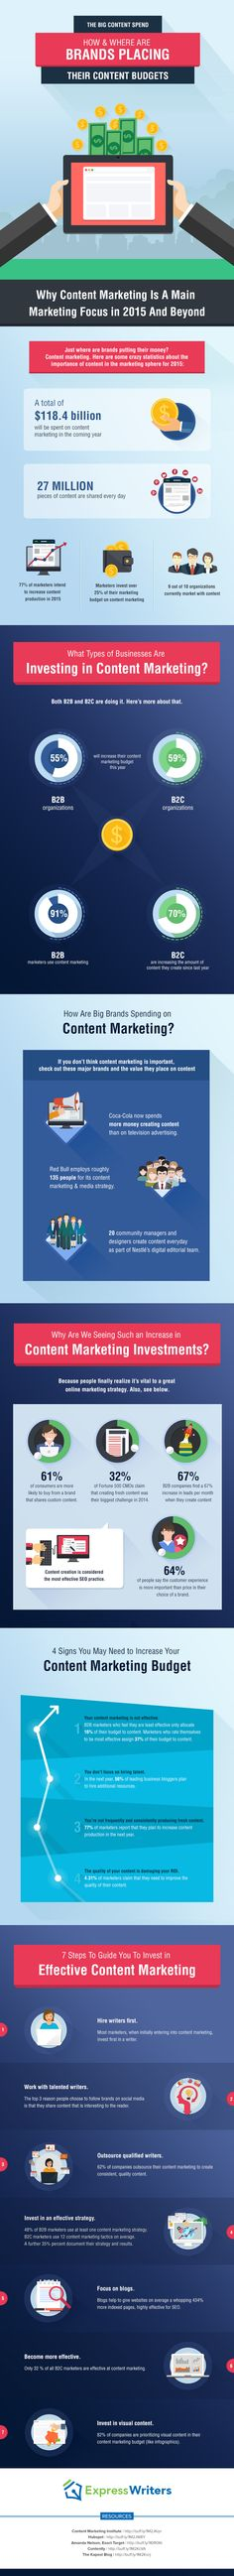 The Big Content Spend: How & Where Are Brands Placing Their Content Budgets [Infographic] | Social Media Today